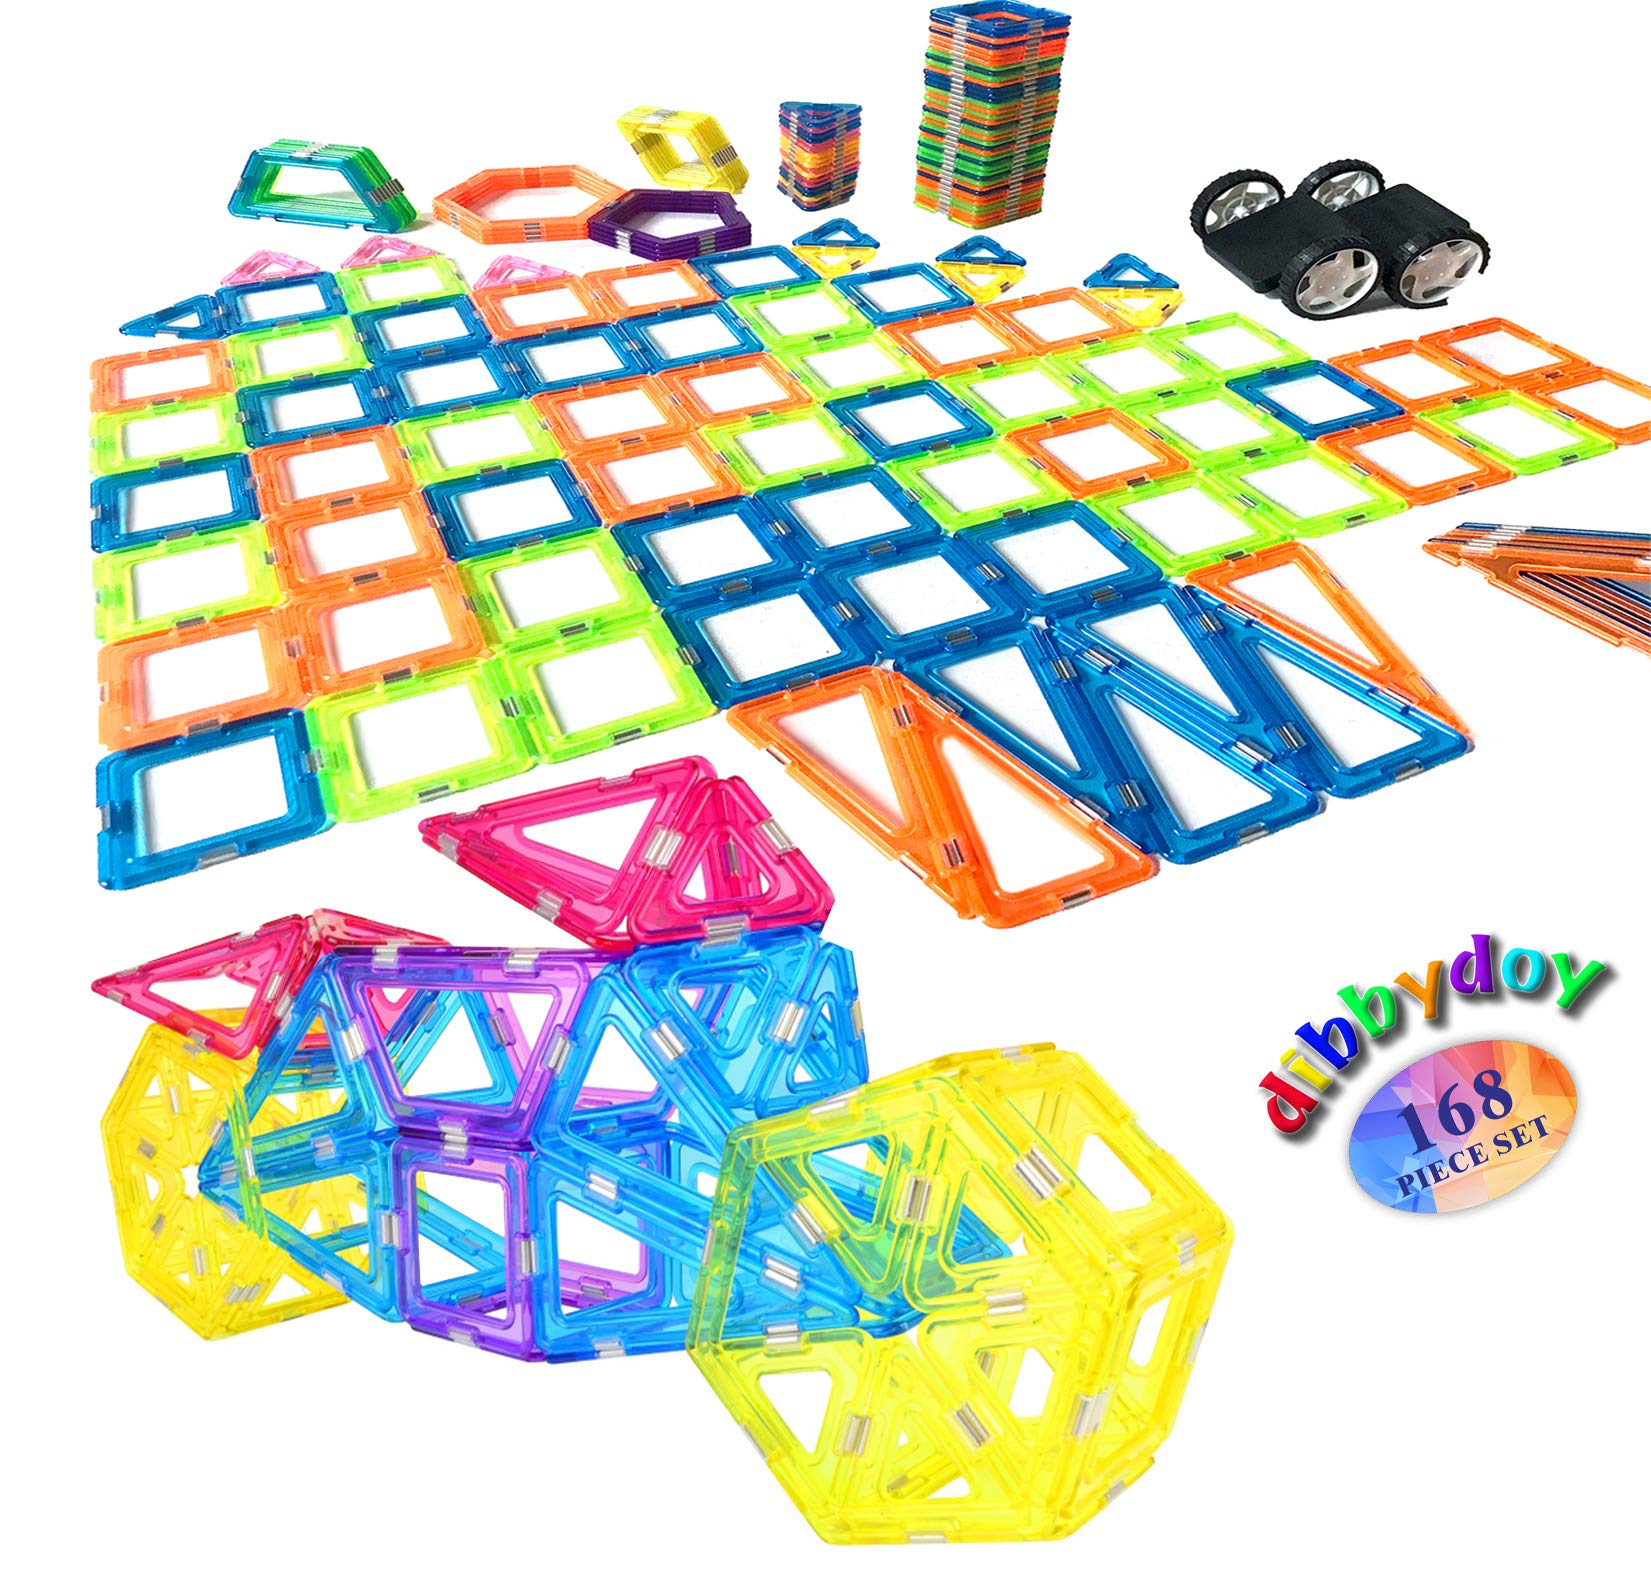 Happy Kids Didactic Toys Magnetic Building Sets Dibbydoy - Magnet Tiles Big Blocks Stack Set - 168 pcs Wide Scope and Strong Magnets - Deluxe Edition - Fiddle Toys Magnet for 3yr old kids